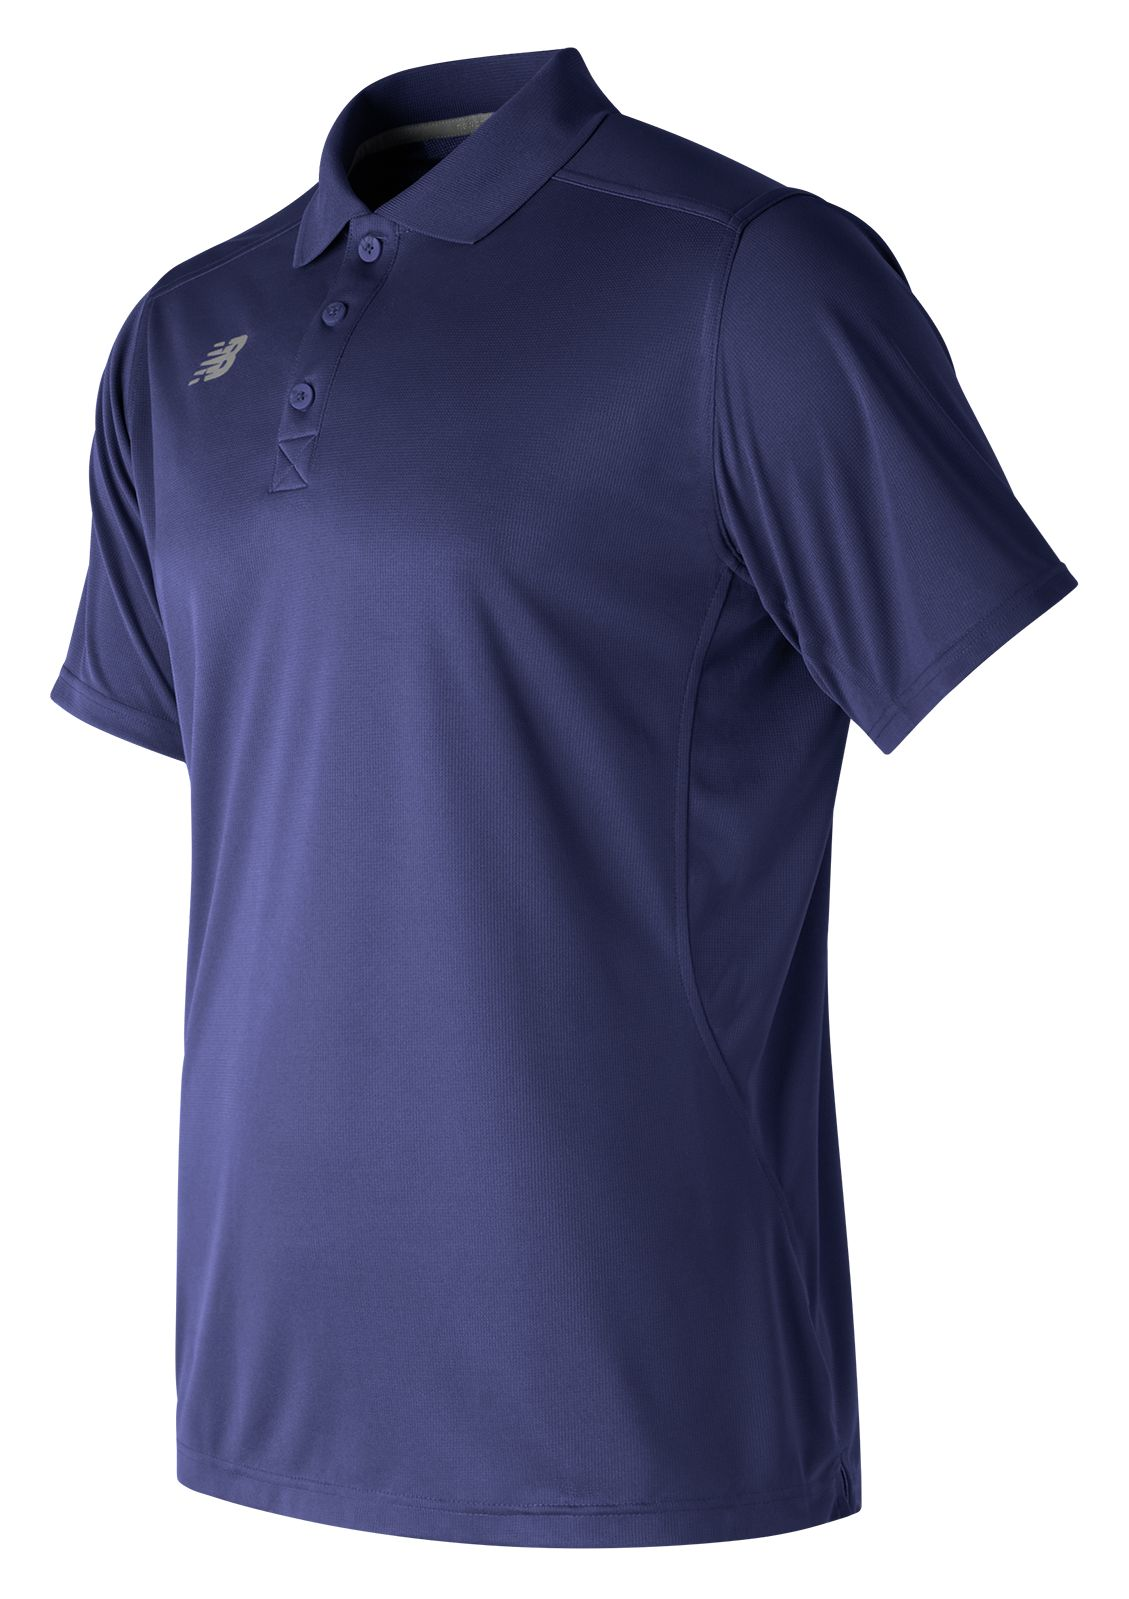 Men's Performance Tech Polo